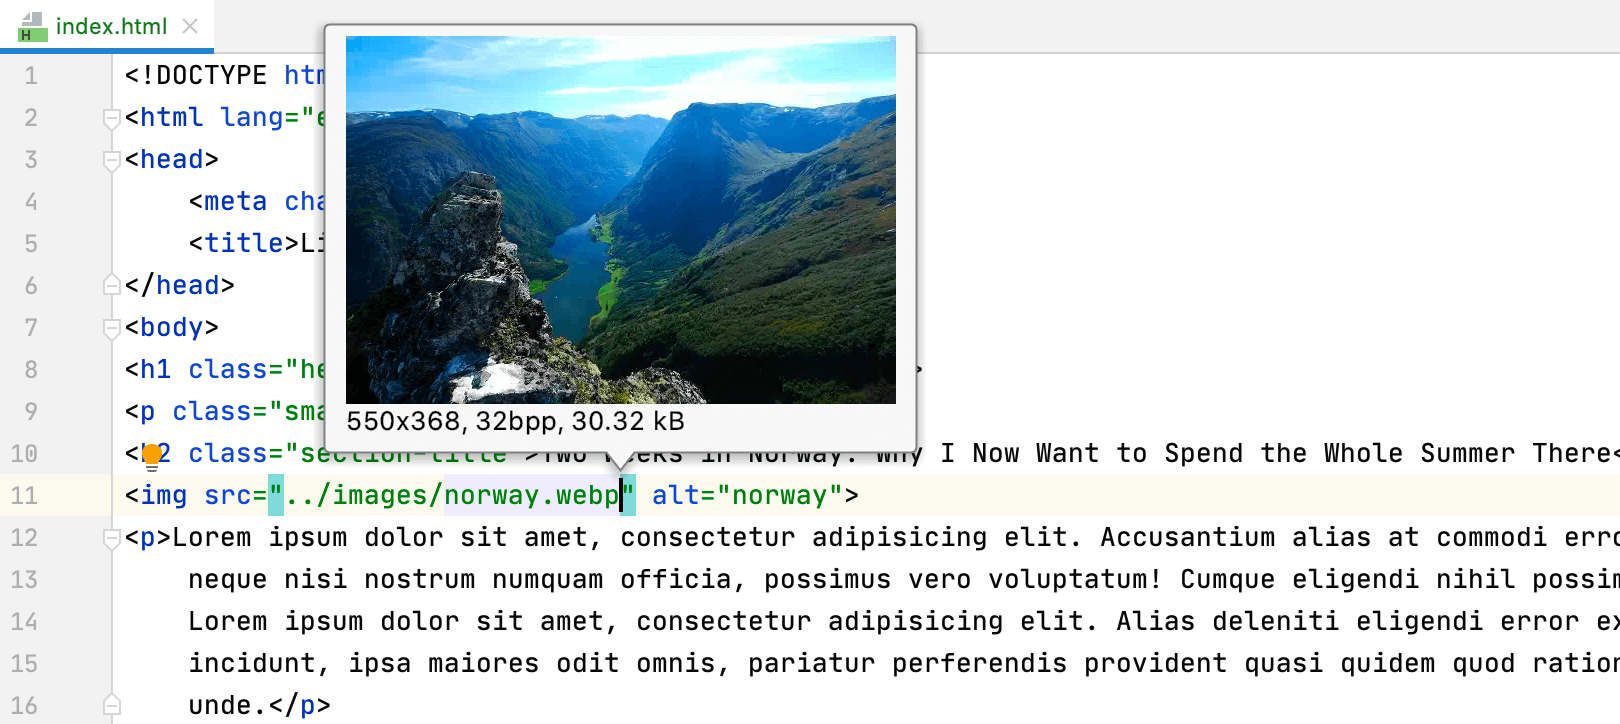 Preview WebP images in the IDE